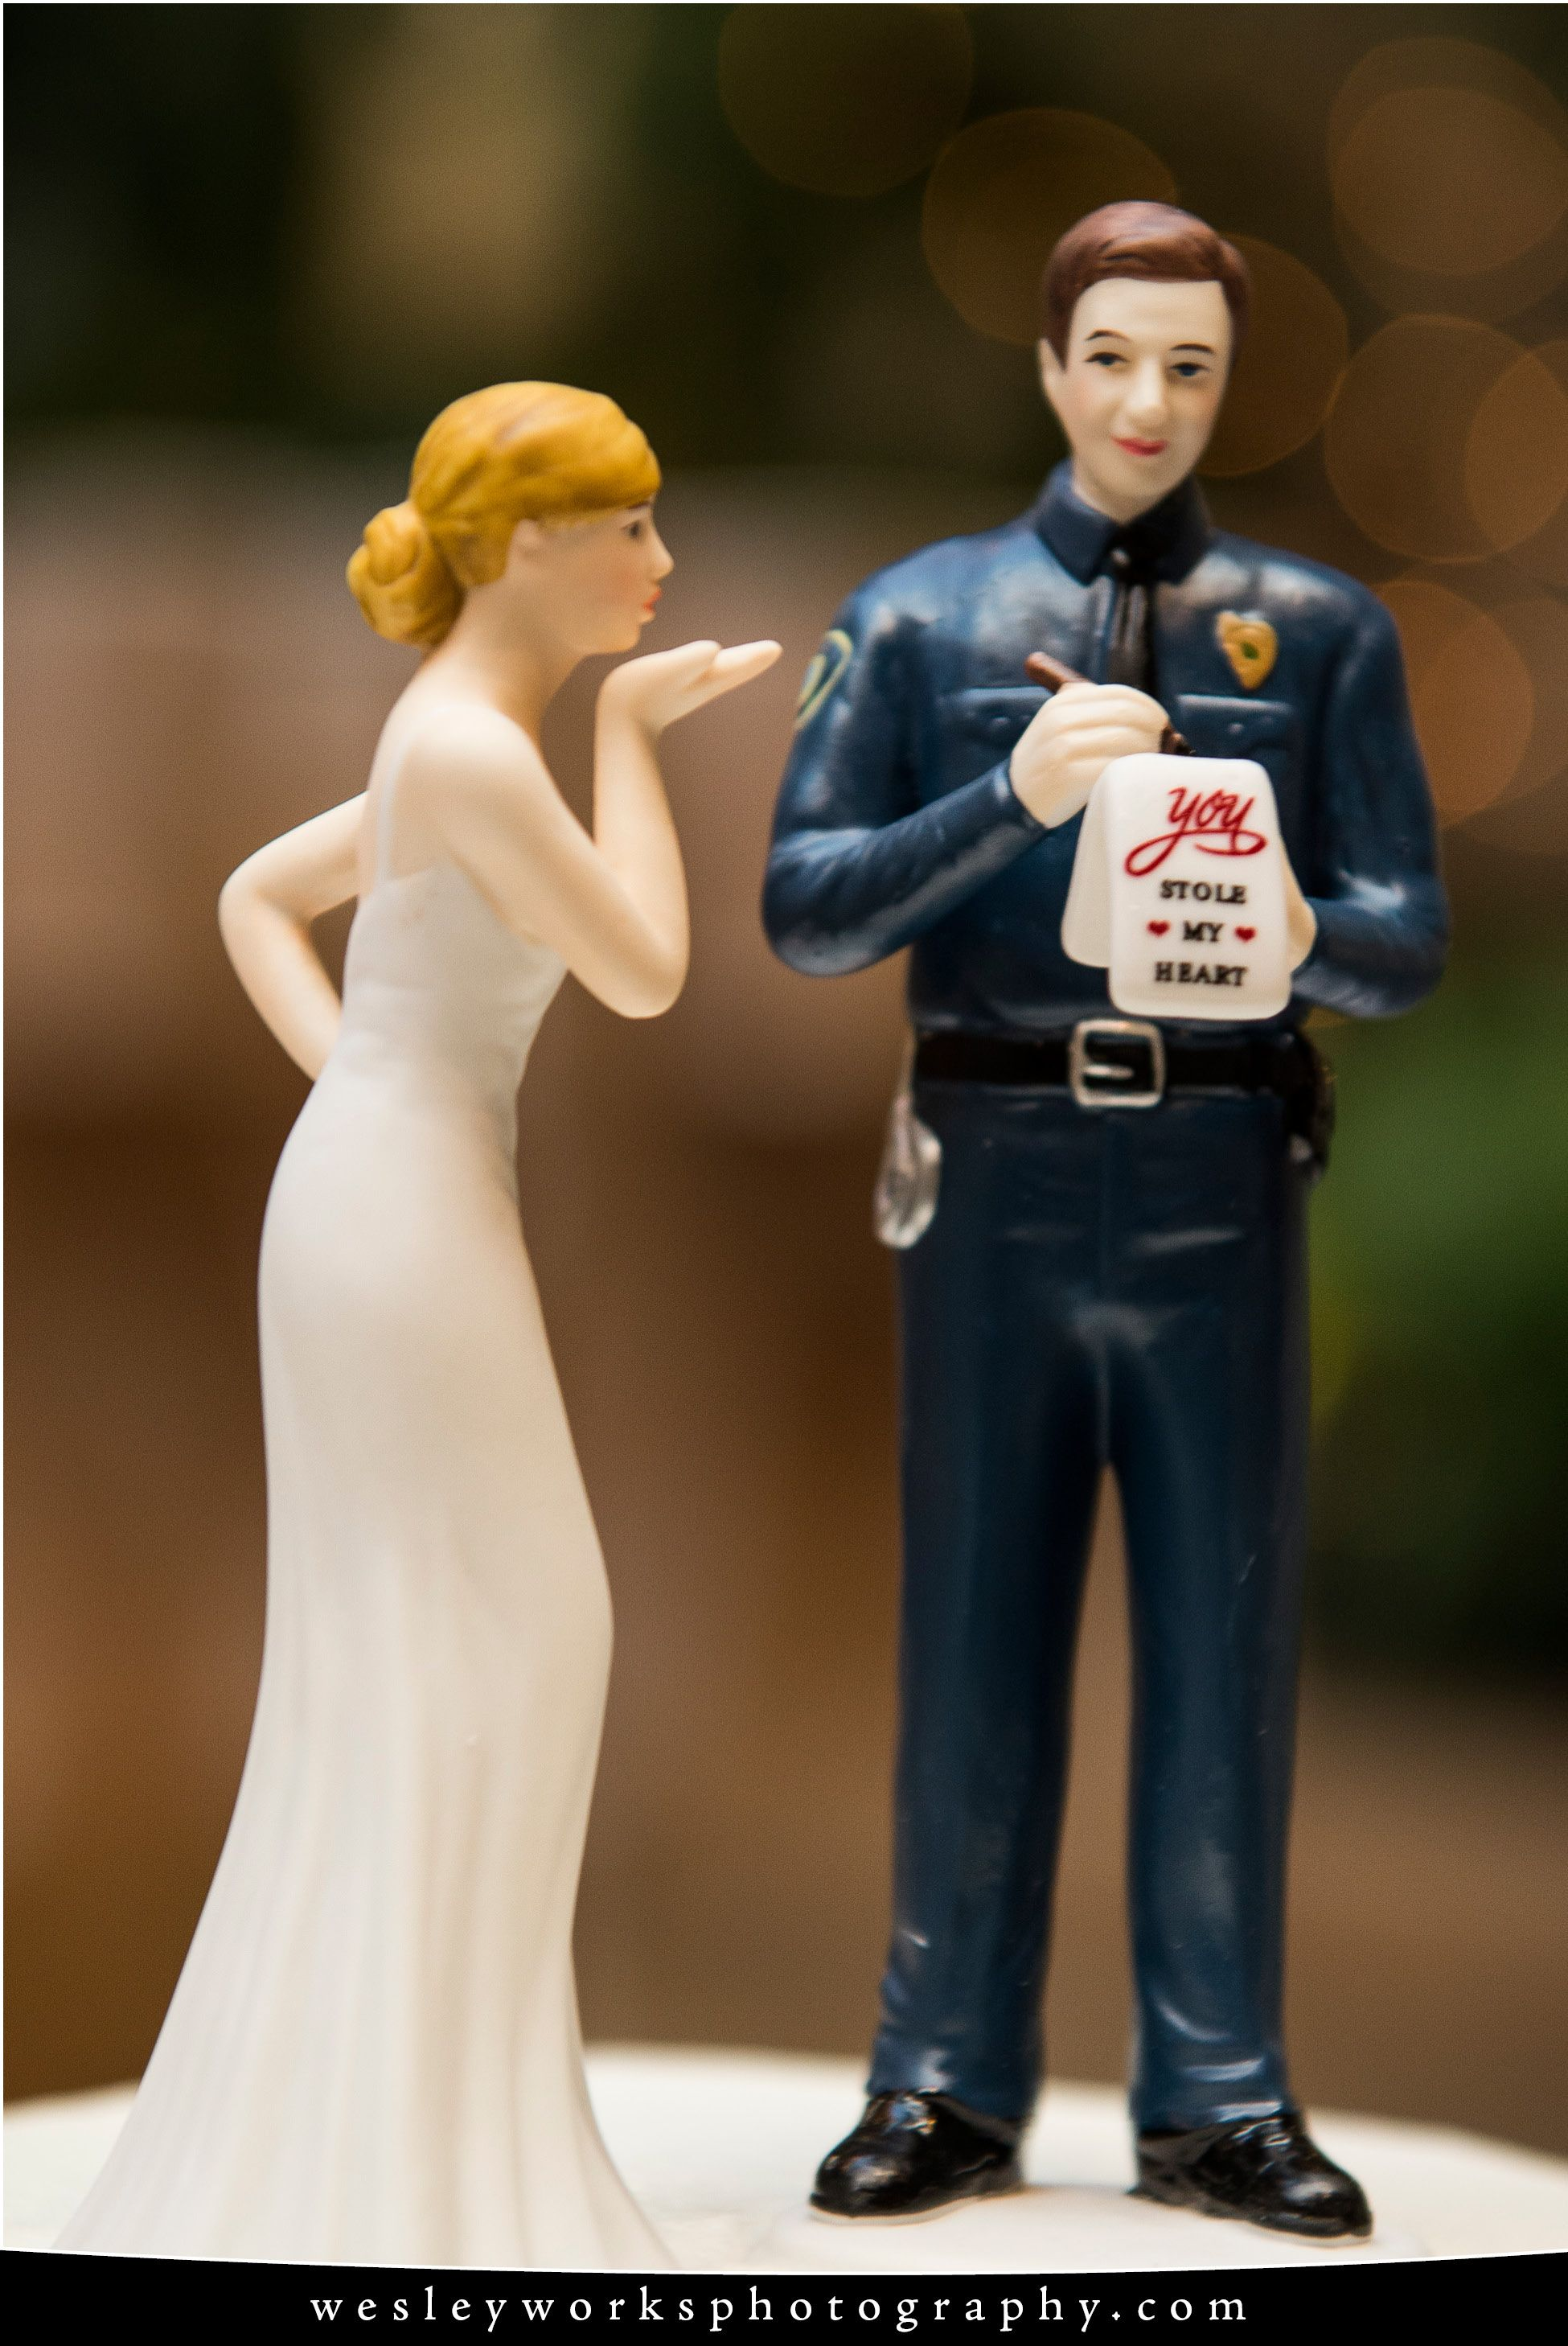 creative wedding ideas creative cake toppers police cake